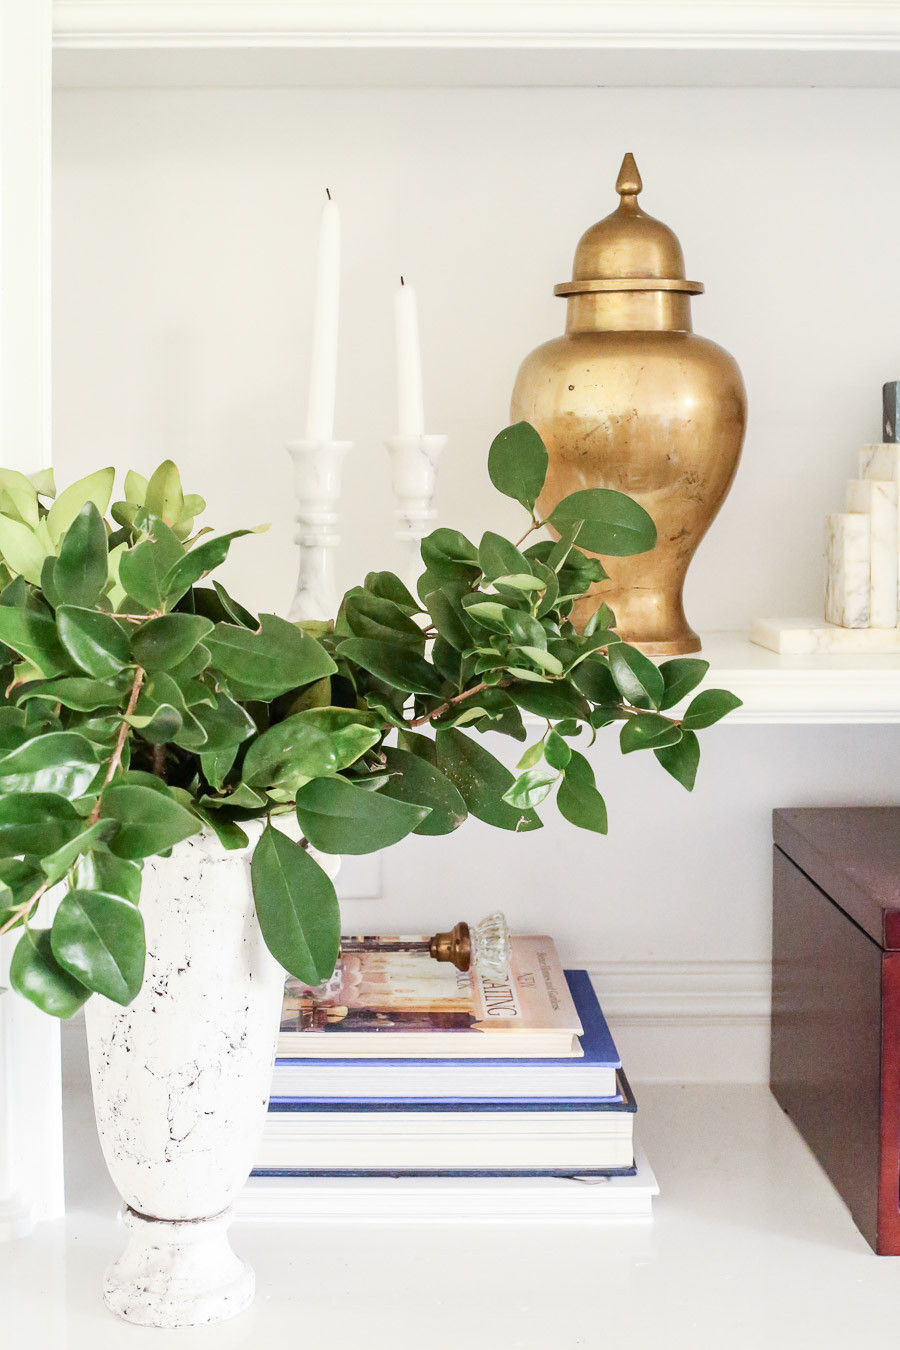 styled shelf, brass urn and green plant